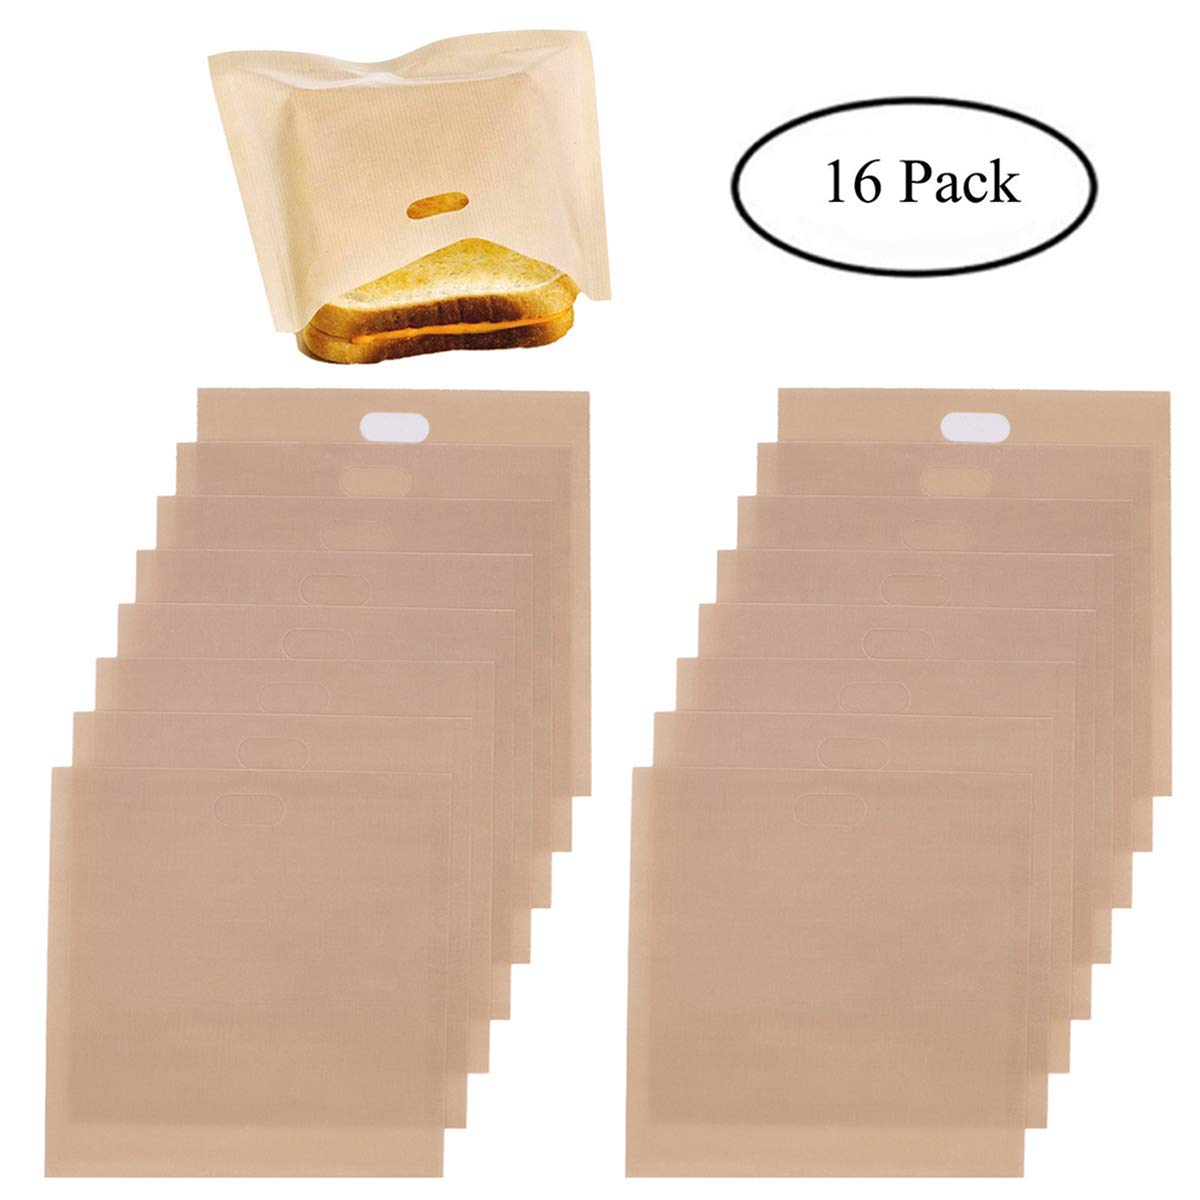 Homezal Non Stick Reusable Toaster Bags, 6.5 x 6.3 Inch, Beige, Pack of 16